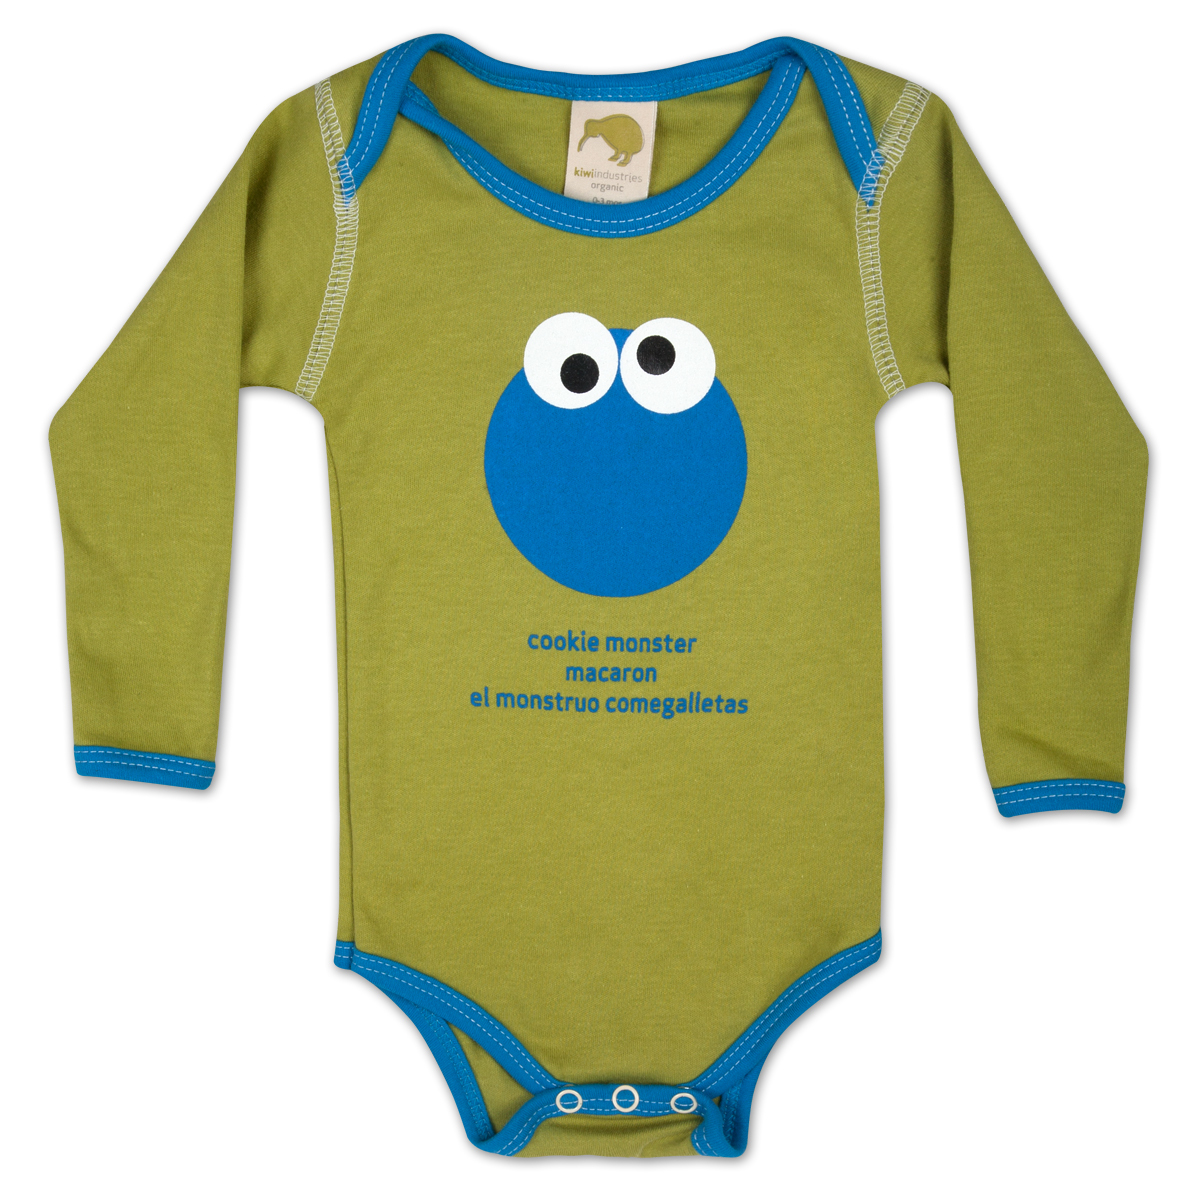 Cookie Monster Around the World Onesie